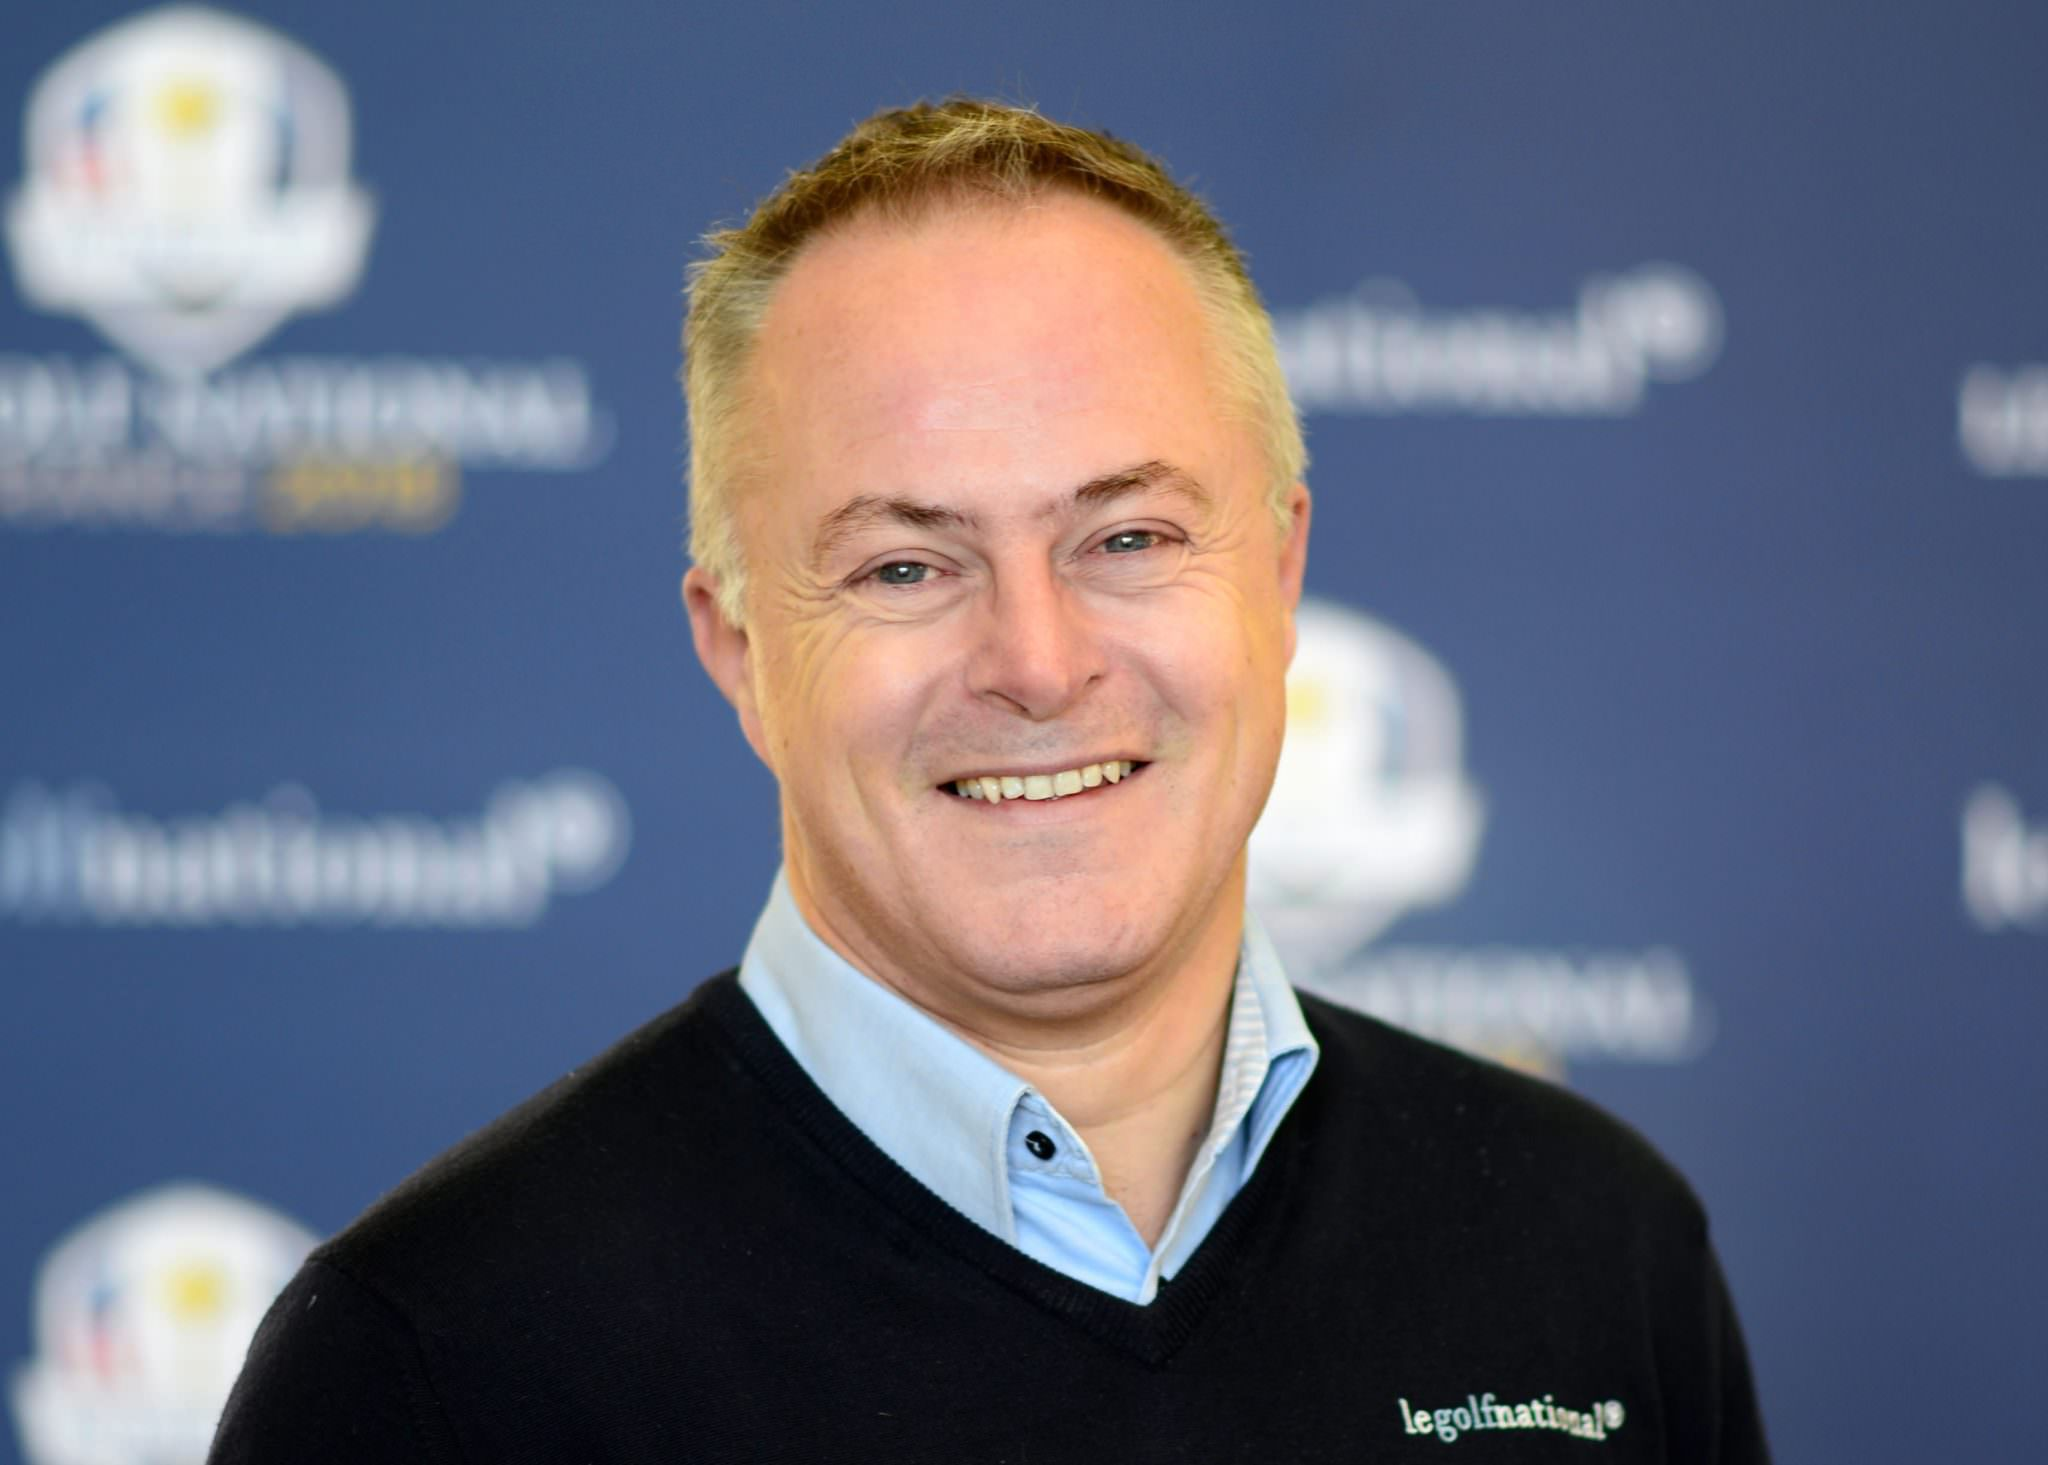 Paul Armitage - General Manager at Le Golf National, Paris